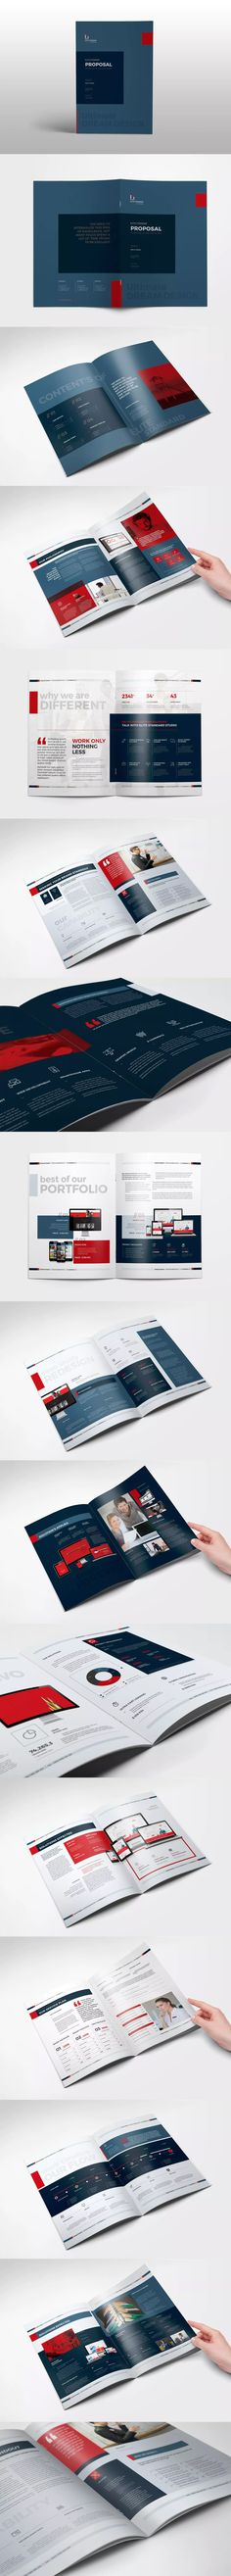 Proposal Template InDesign INDD - A4 and Us Letter Size | Proposal ...